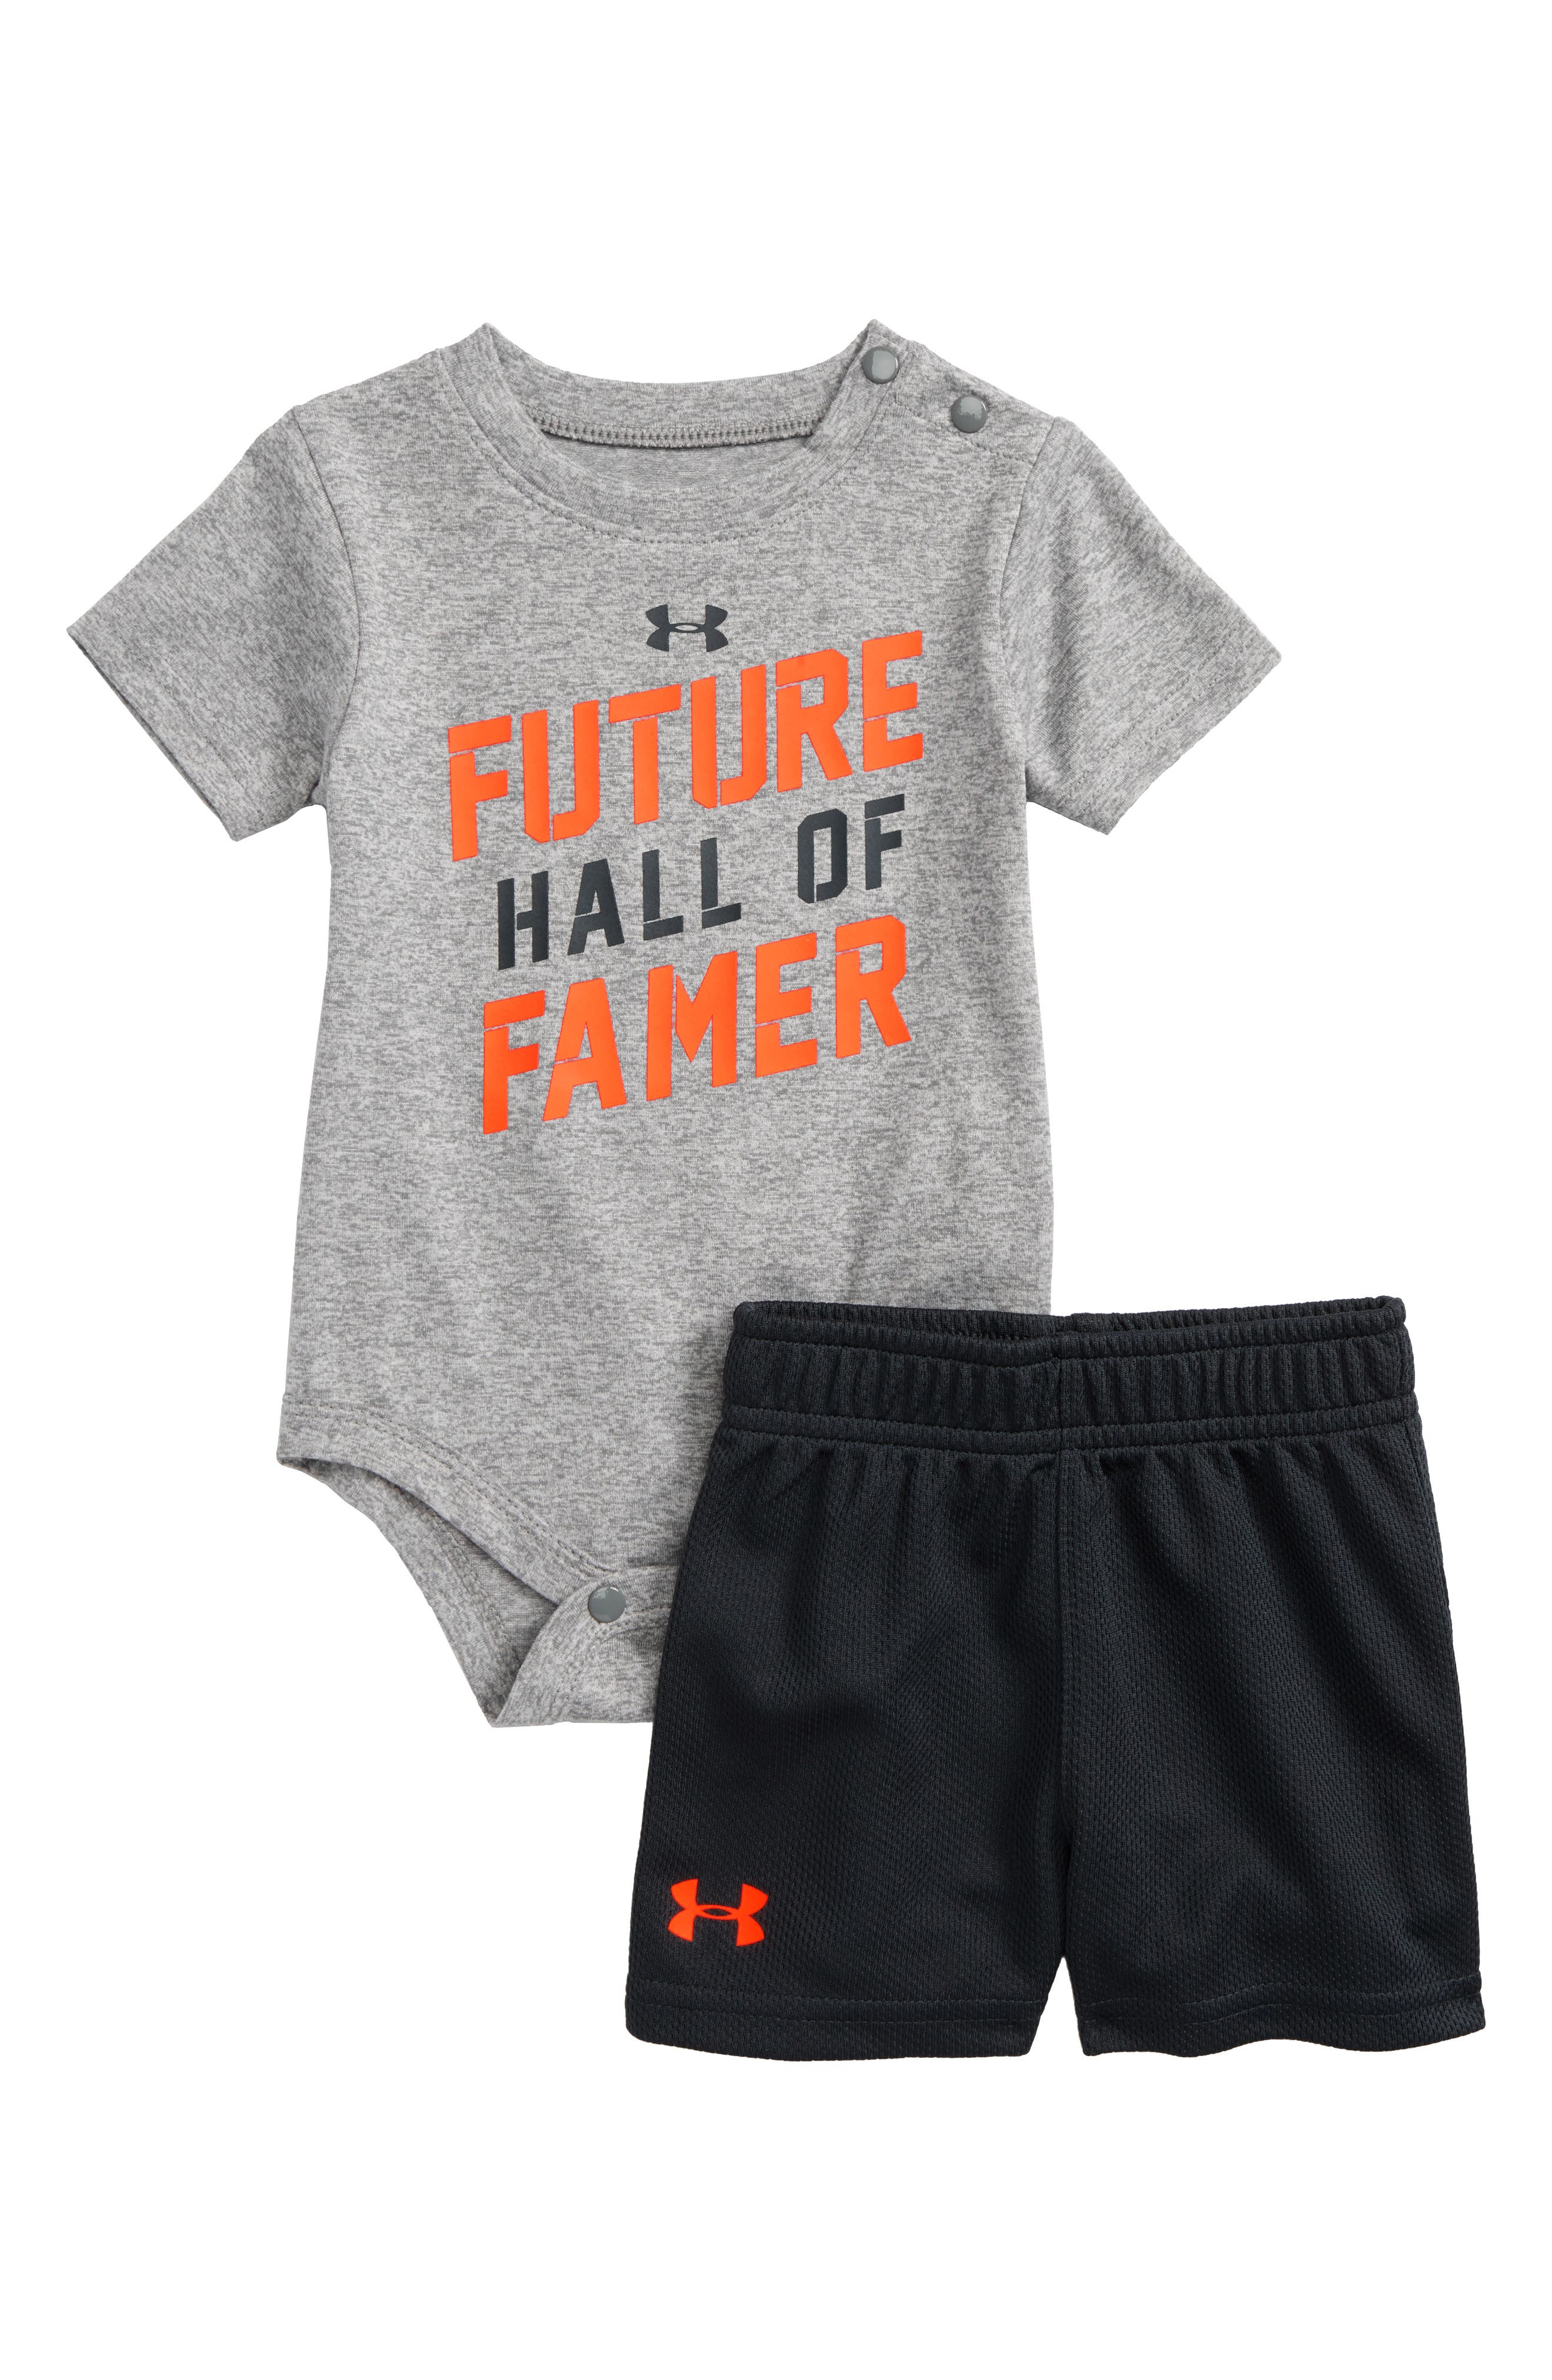 Under Armour Future Hall of Famer Bodysuit & Mesh Shorts Set (Baby Boys)